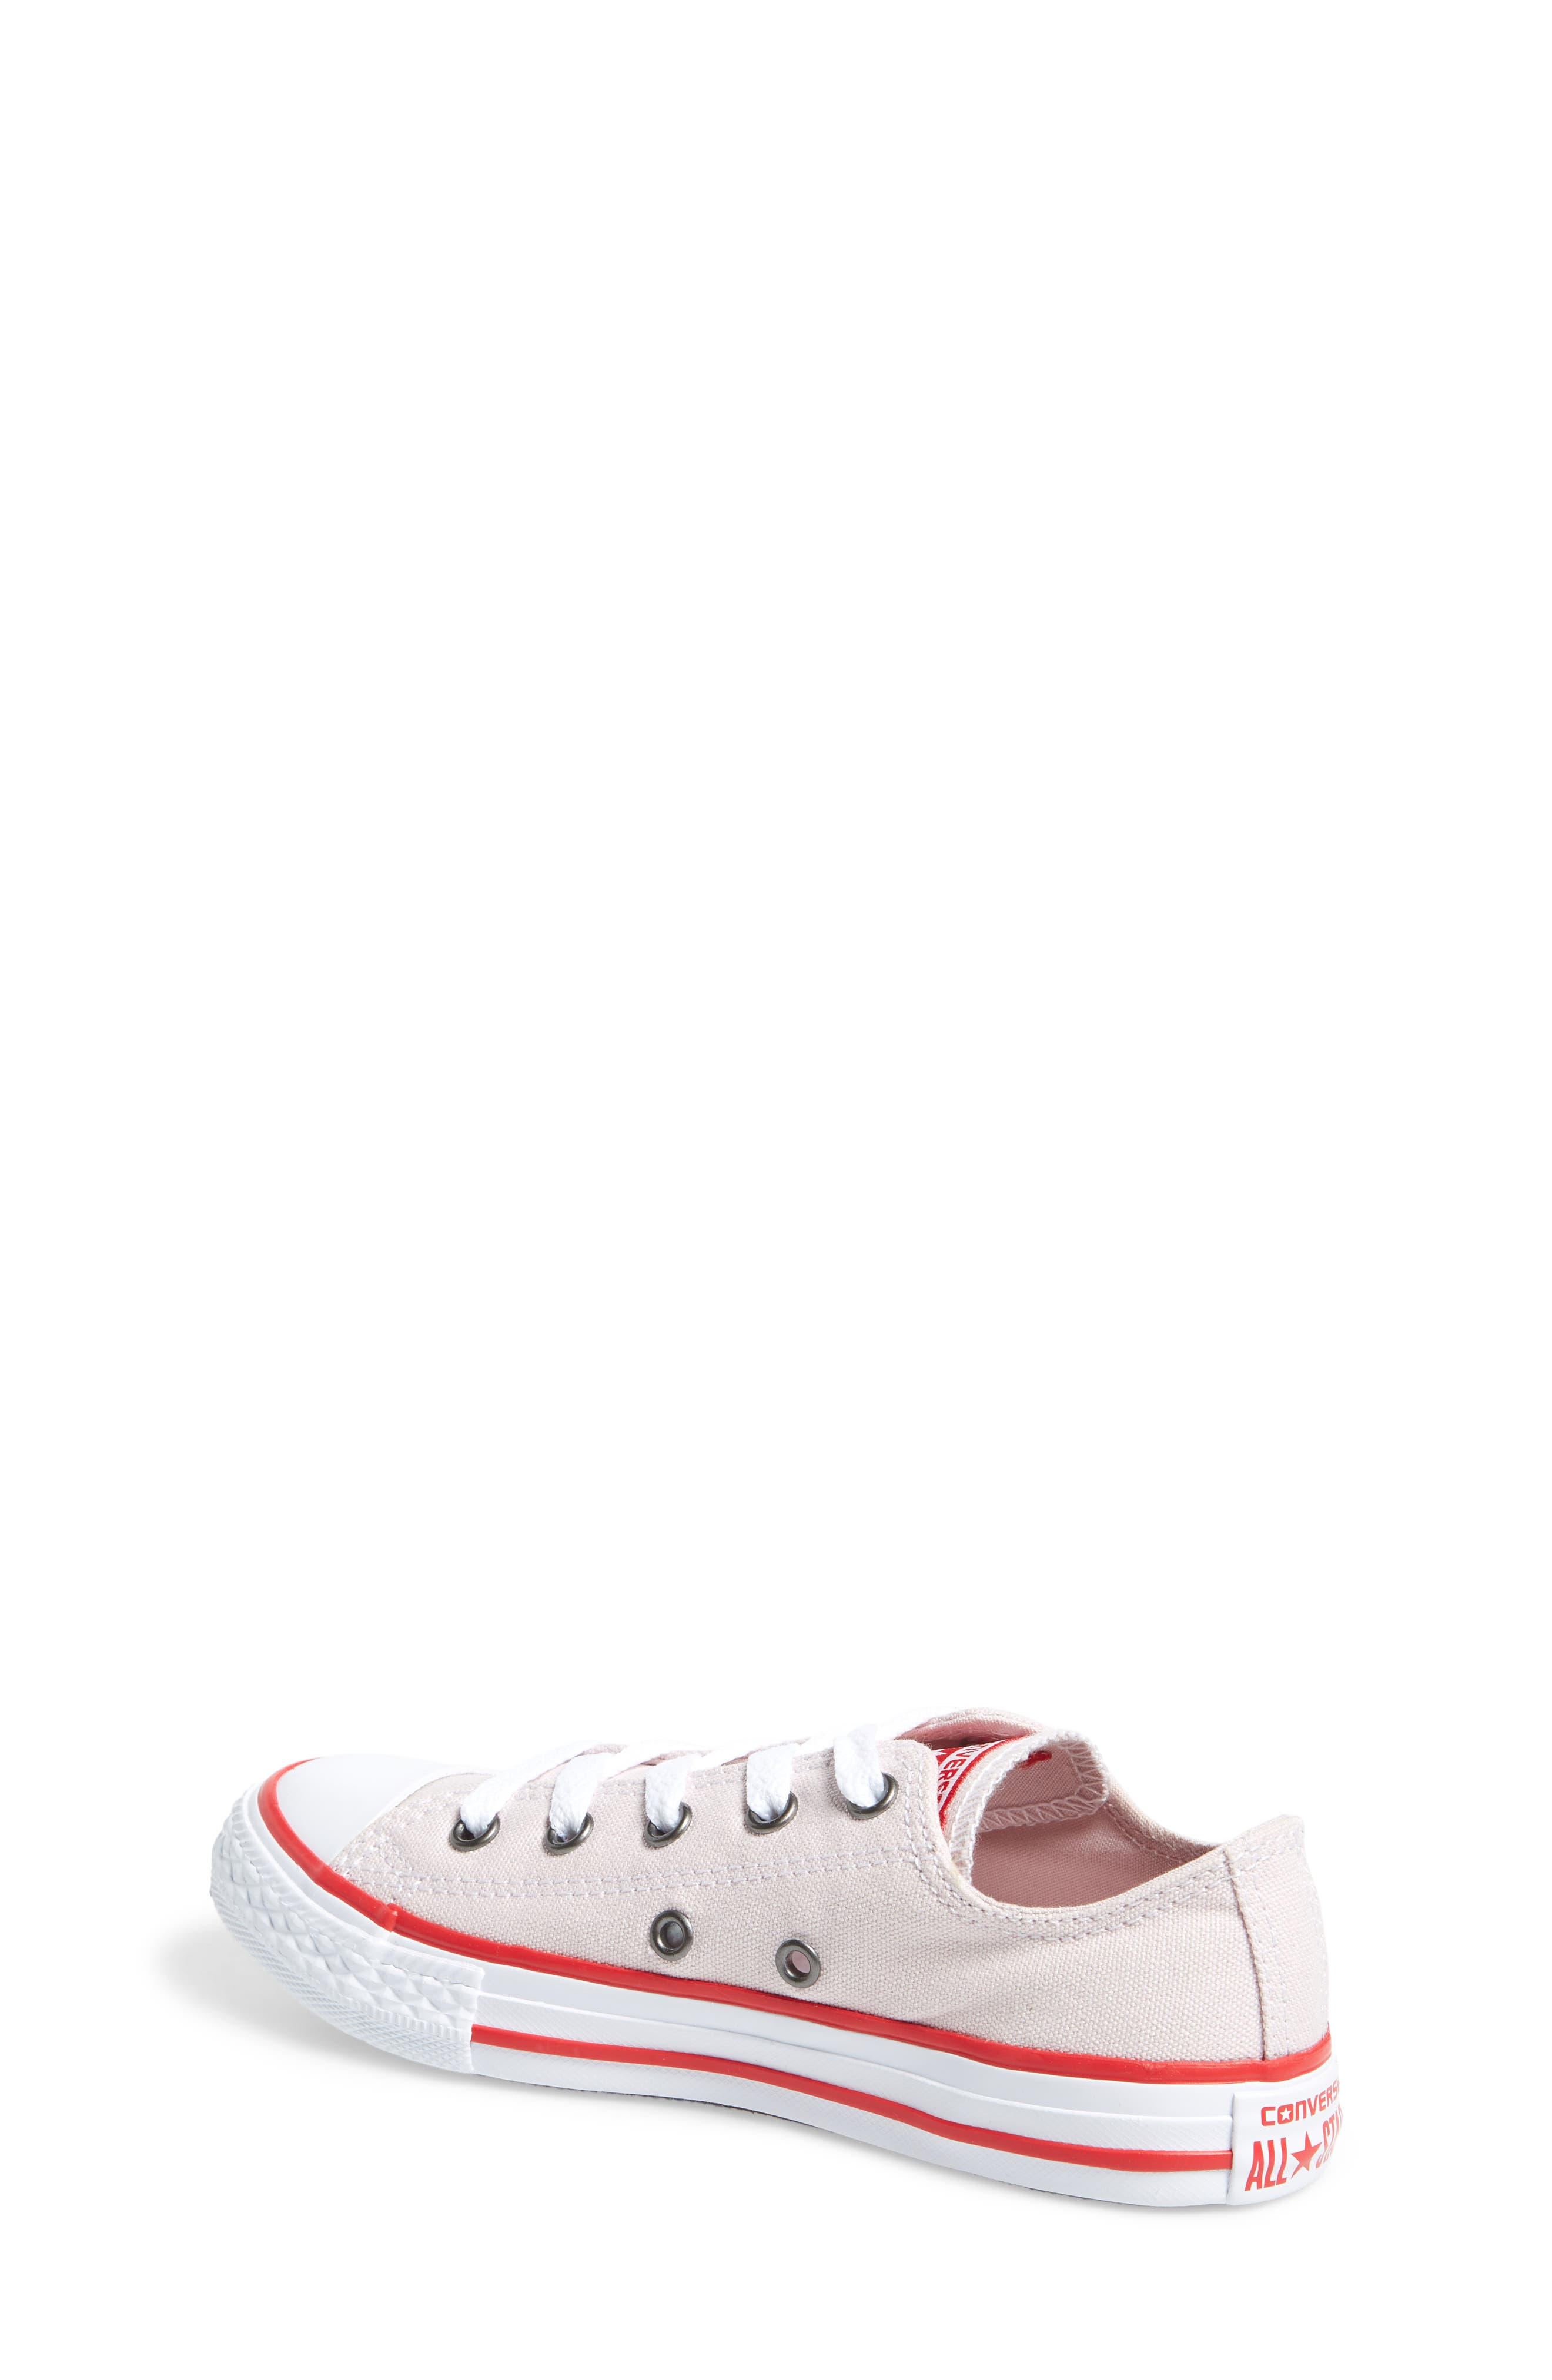 Chuck Taylor<sup>®</sup> All Star<sup>®</sup> Low Top Sneaker,                             Alternate thumbnail 4, color,